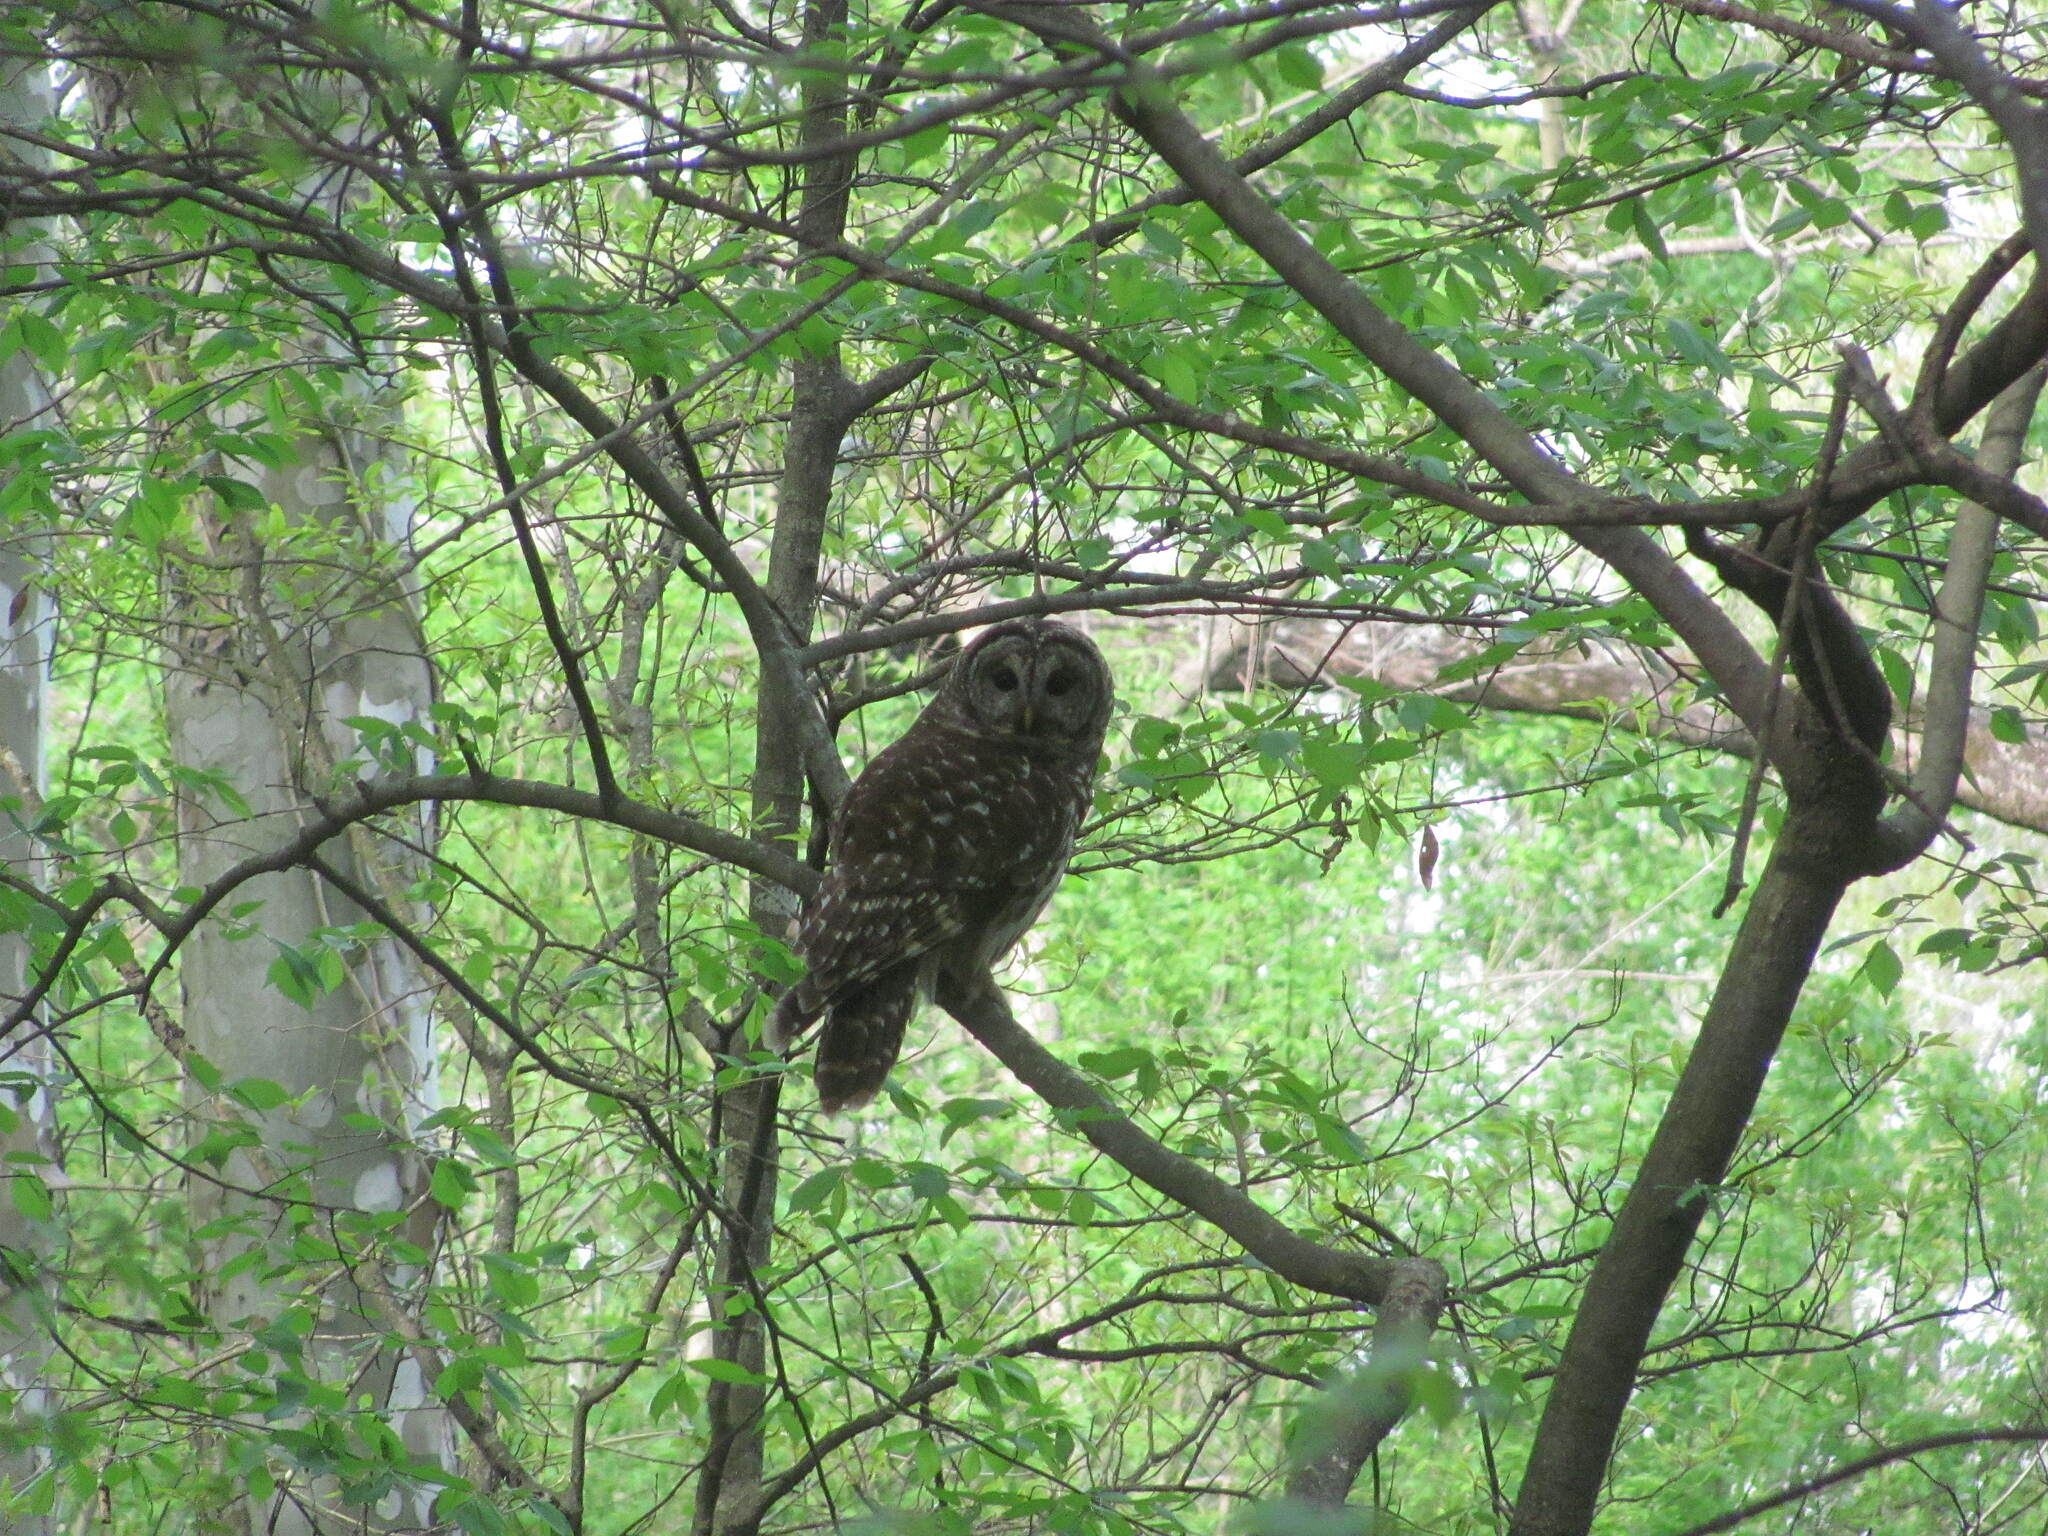 North Oconee River Greenway Bard Owl Seen from the Trail